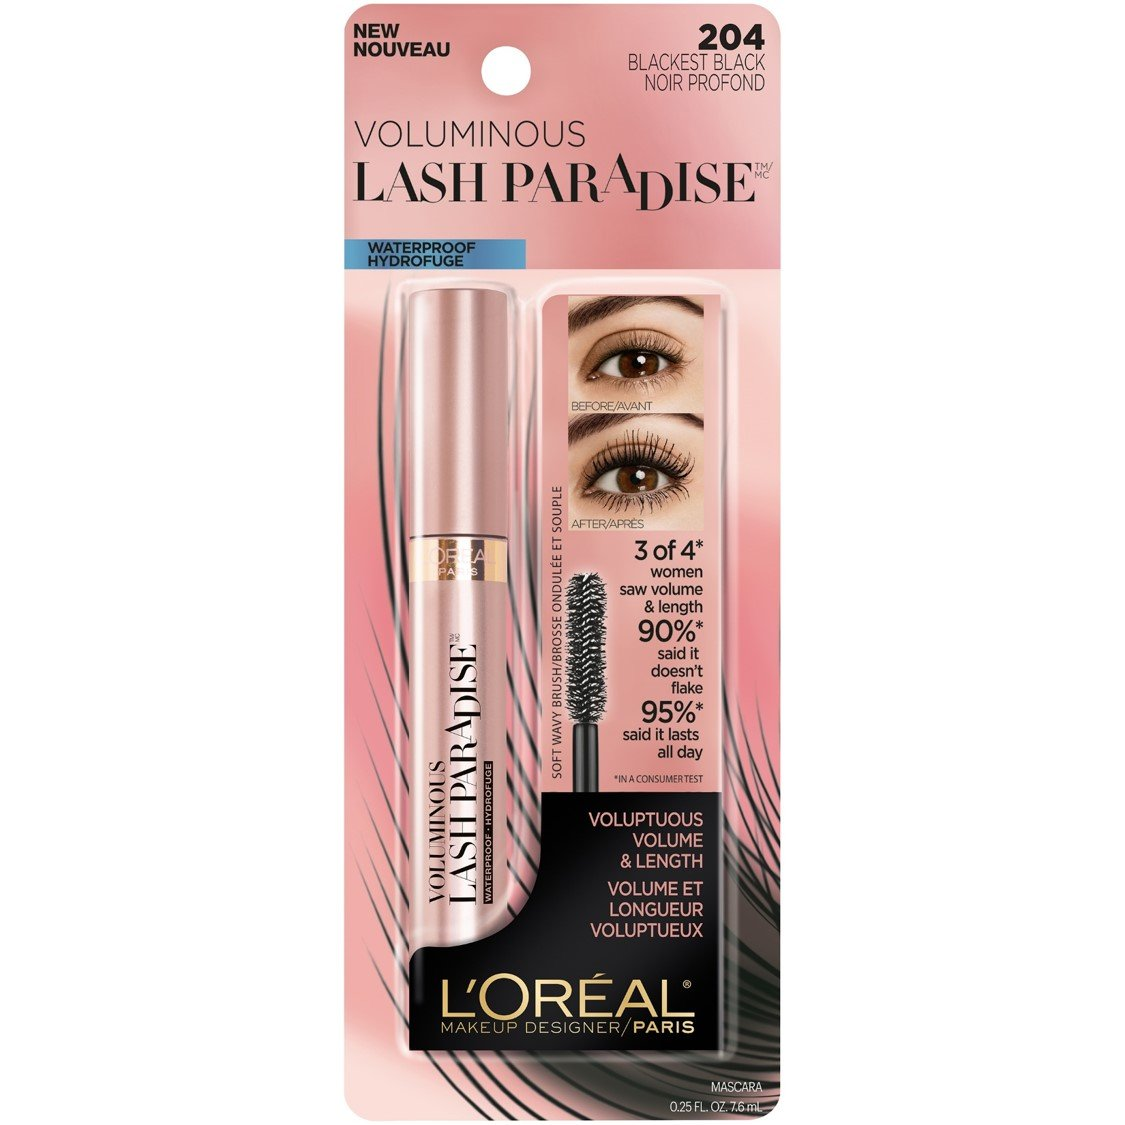 a9365437257 Amazon.com : L'Oreal Paris Makeup Lash Paradise Waterproof Mascara,  Voluptuous Volume, Intense Length, Feathery Soft Full Lashes, No Smudging,  No Clumping, ...